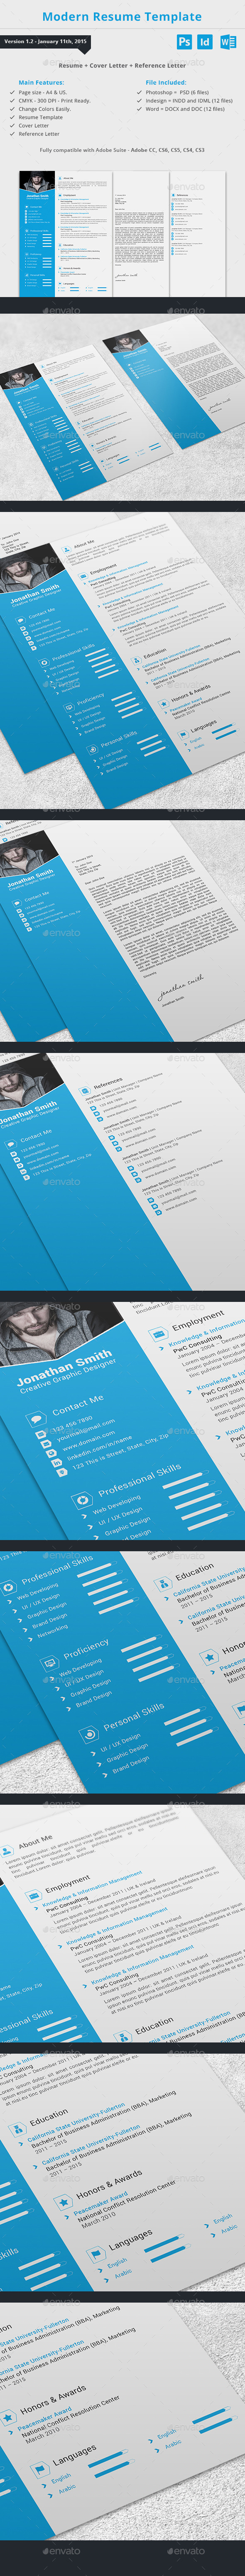 Modern Resume Template - Resumes Stationery